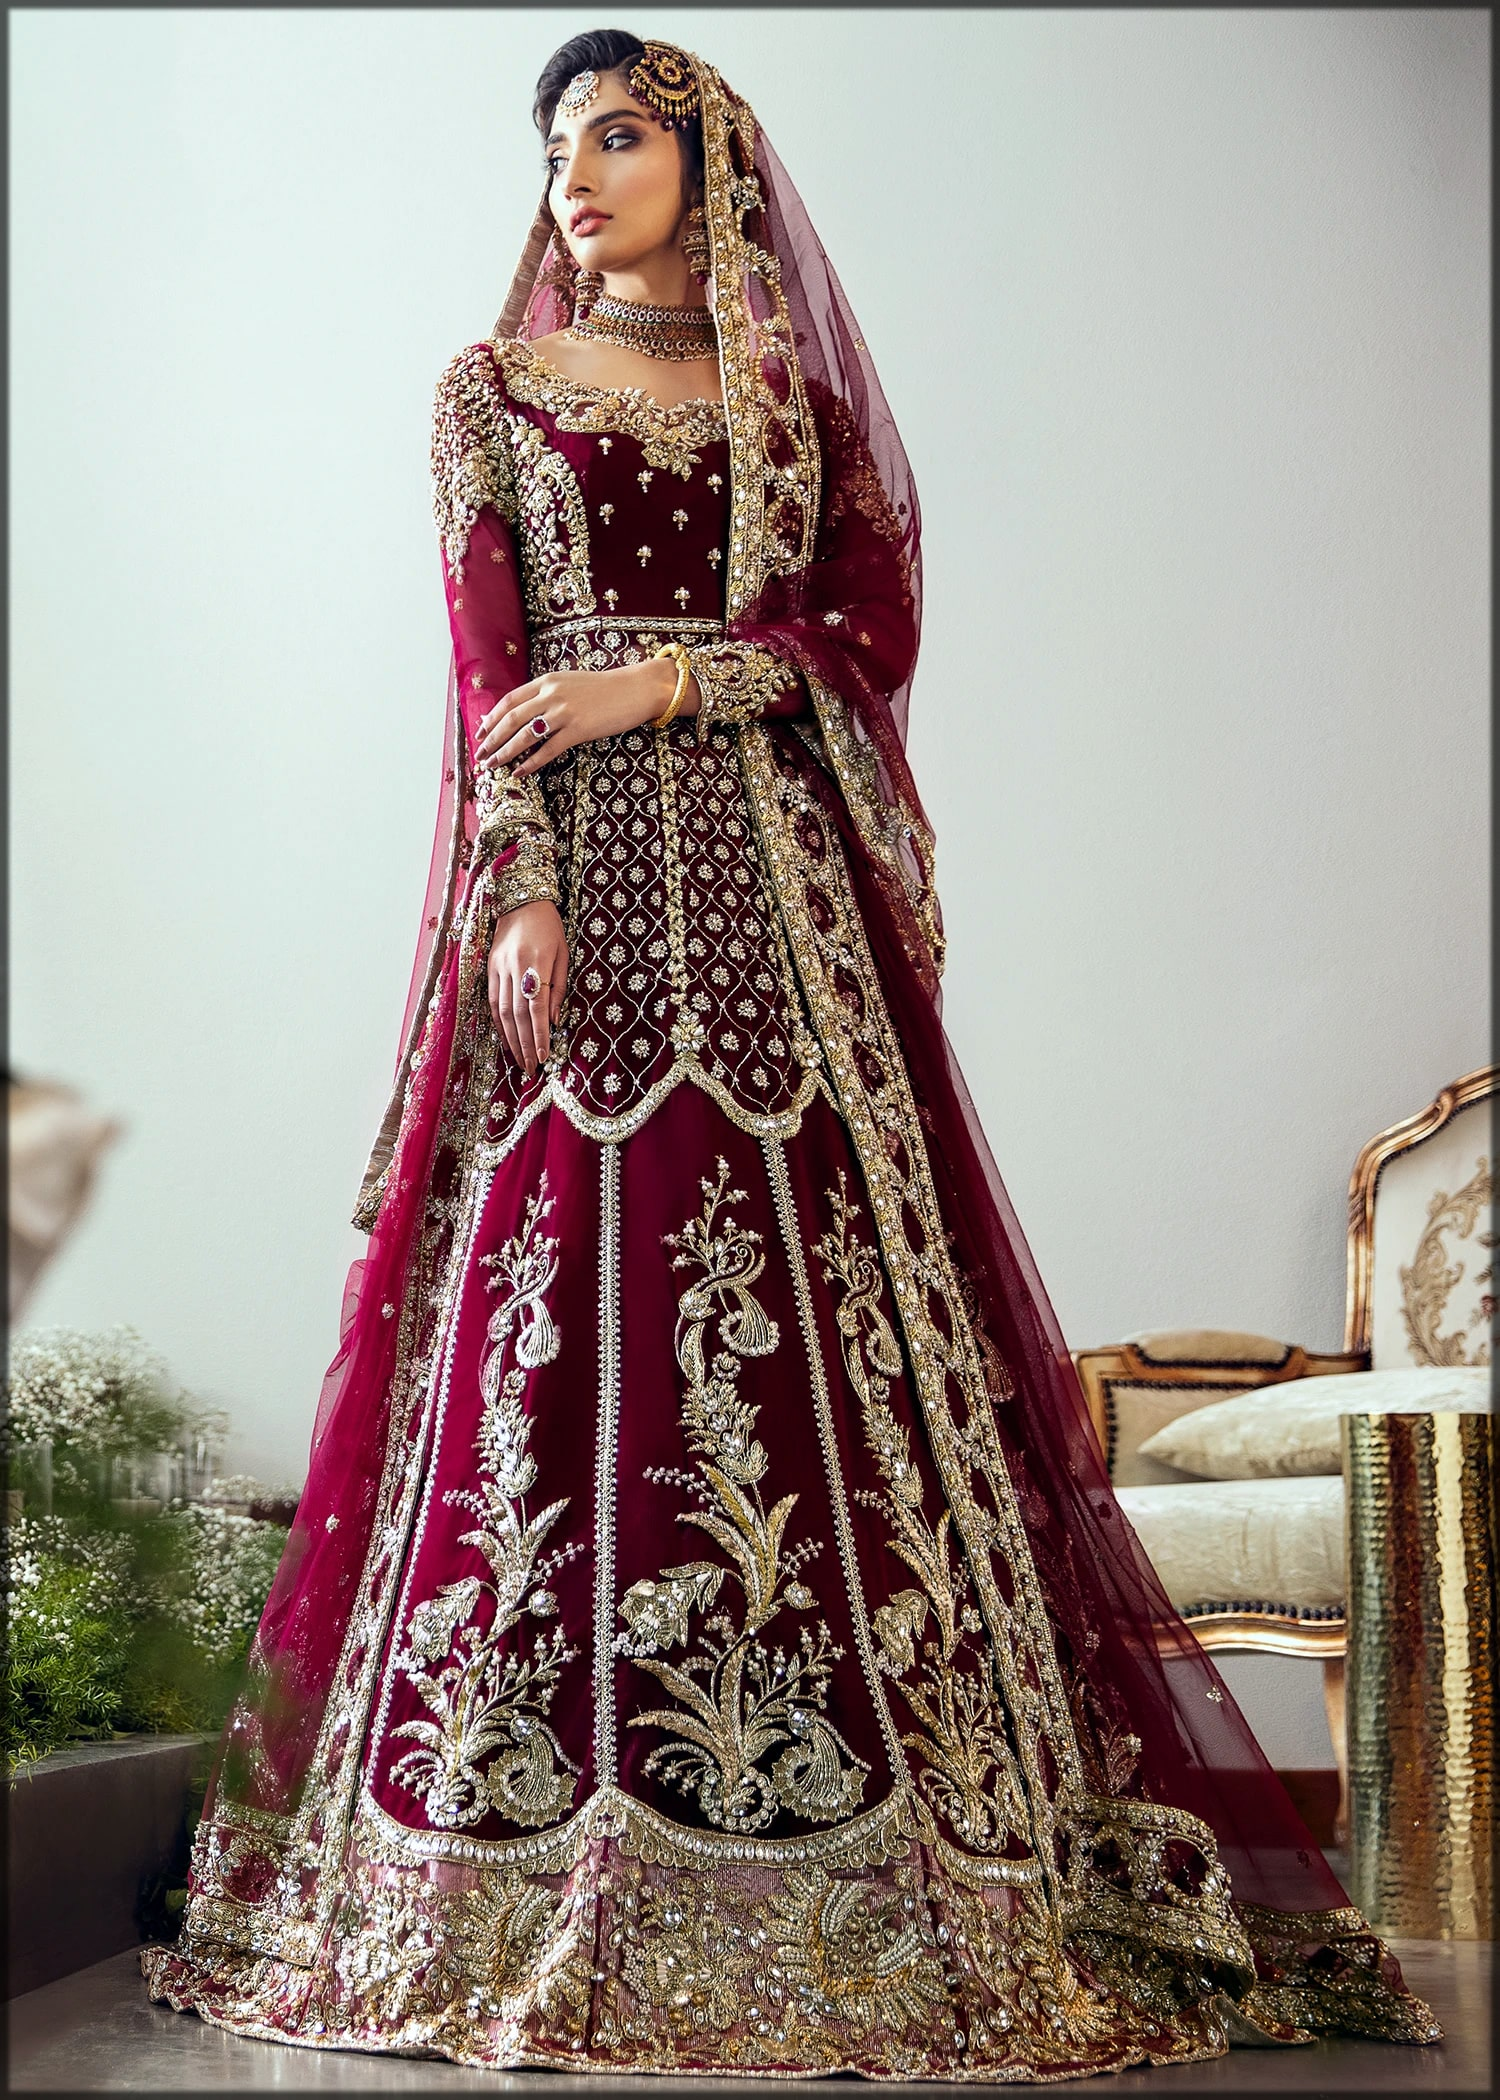 stylish red canberry peshwas for brides by sadaf fawad khan